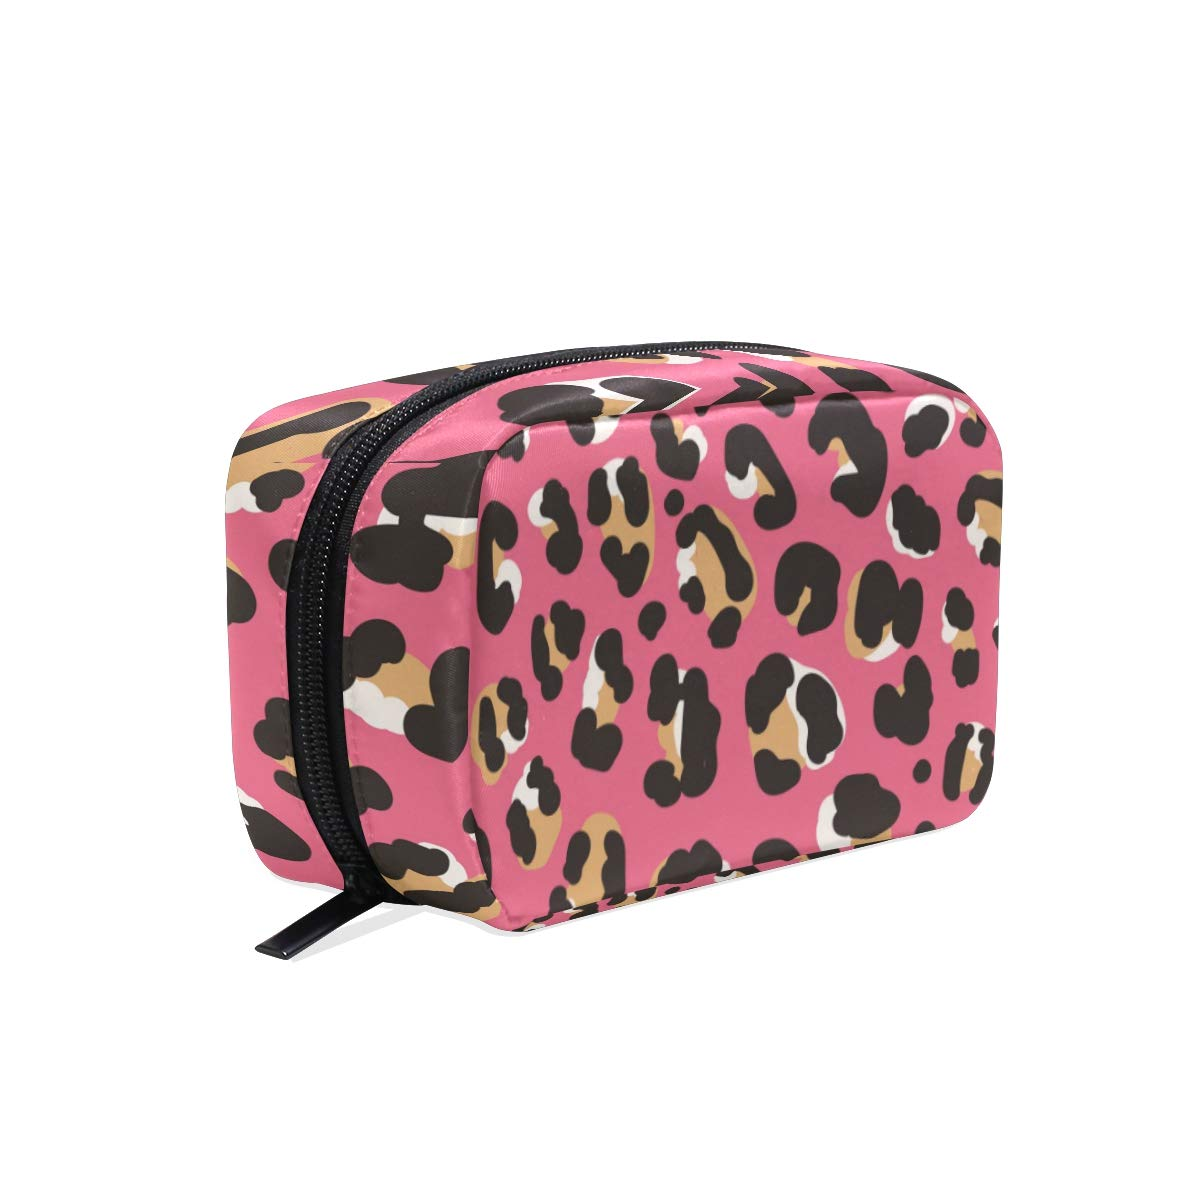 Toiletry Bag Leopard Cosmetic Bag Portable Makeup Bag Pouch Travel Hanging Organizer Bag for Women Girls(831e)